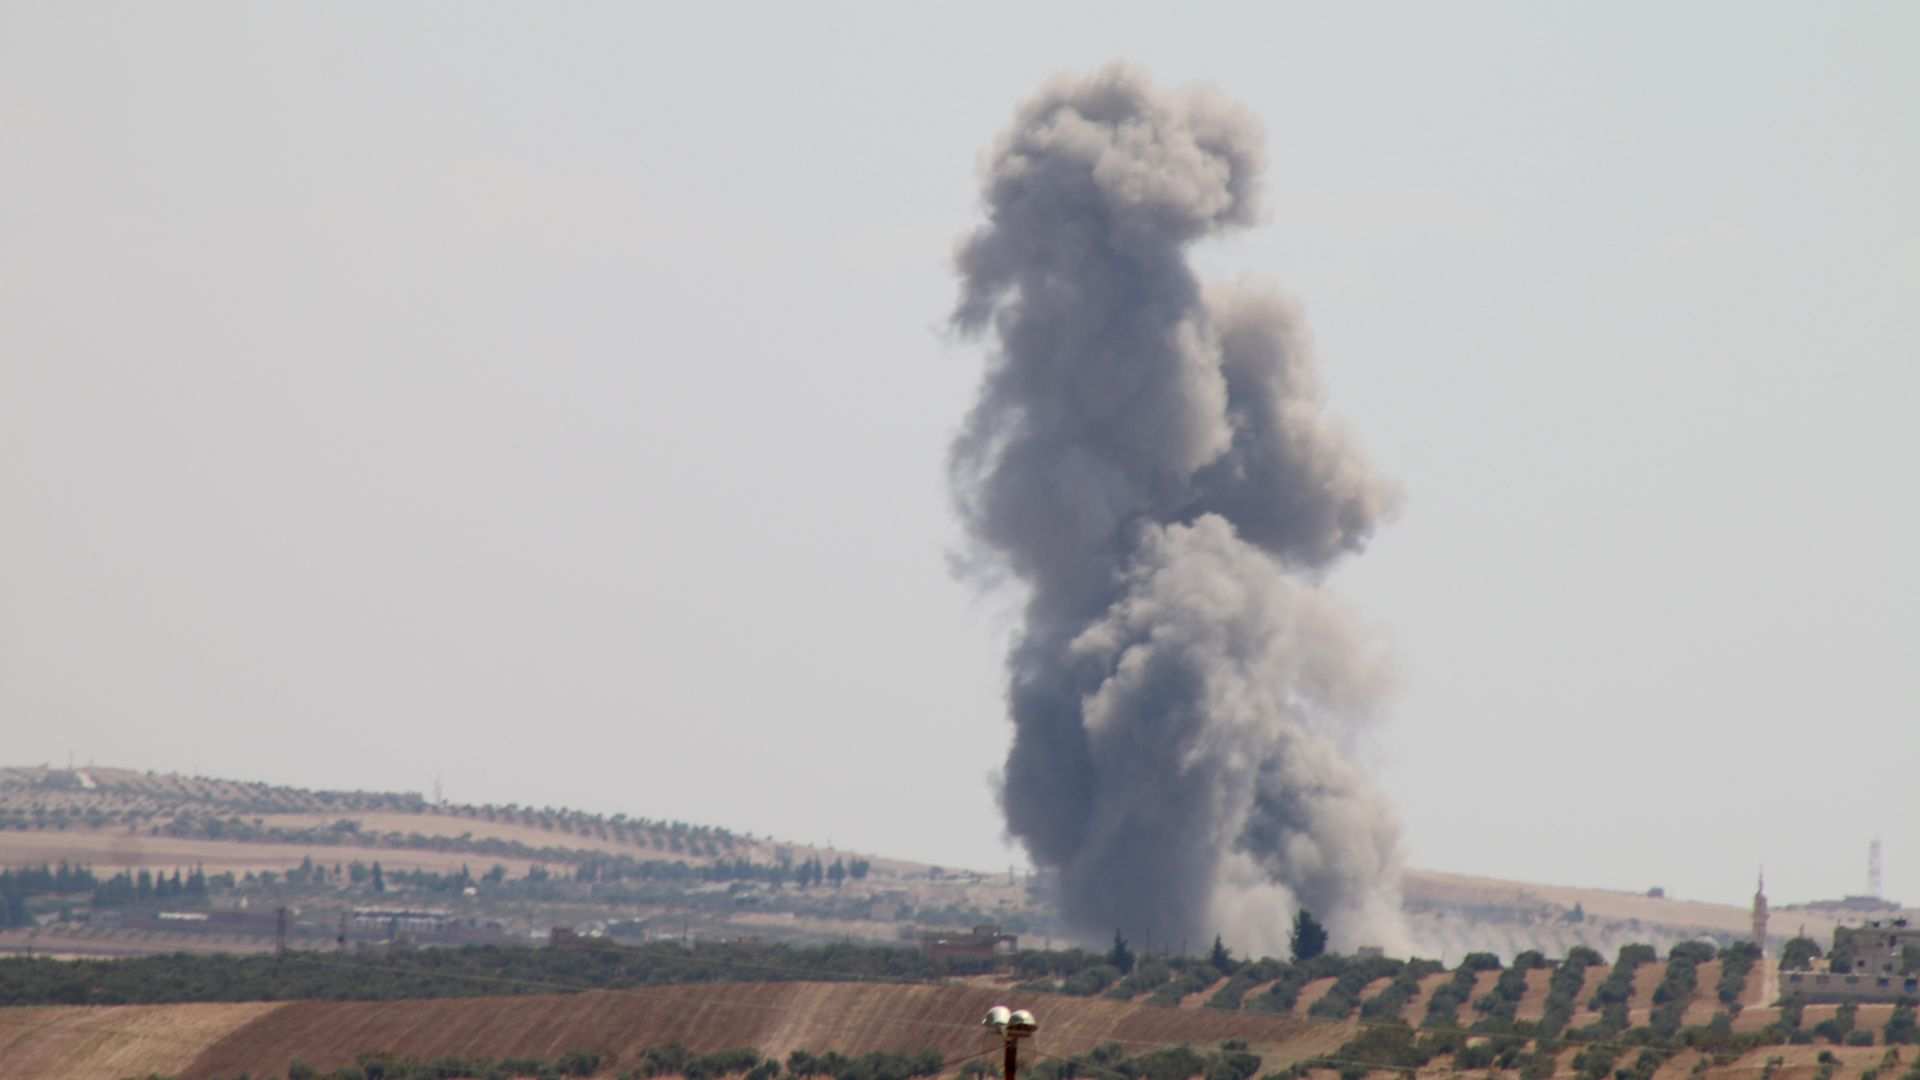 Airstrike picture.